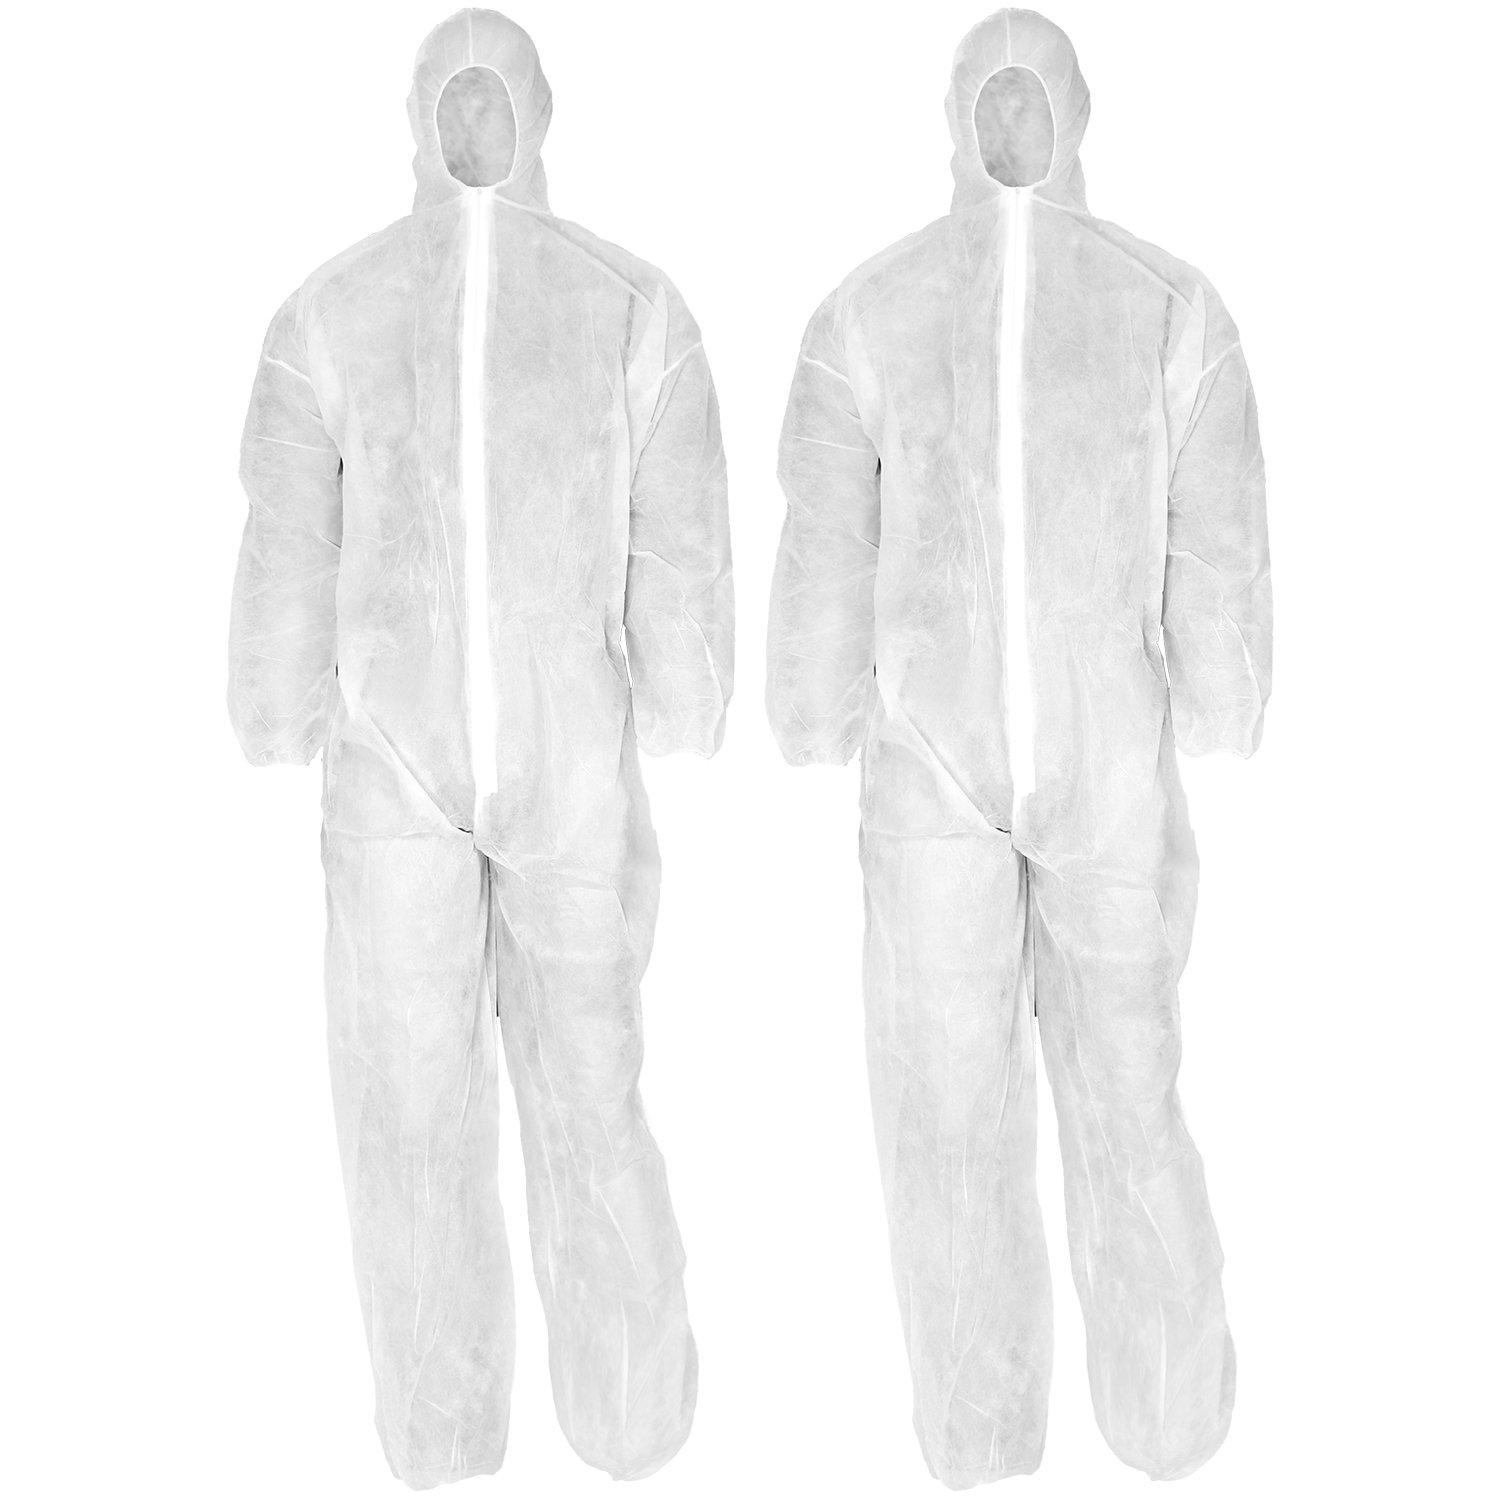 COM-FOUR® 2x disposable protective suit in white with hood and zipper, painter overalls in one size for painting and renovating (02 pieces - Overall)